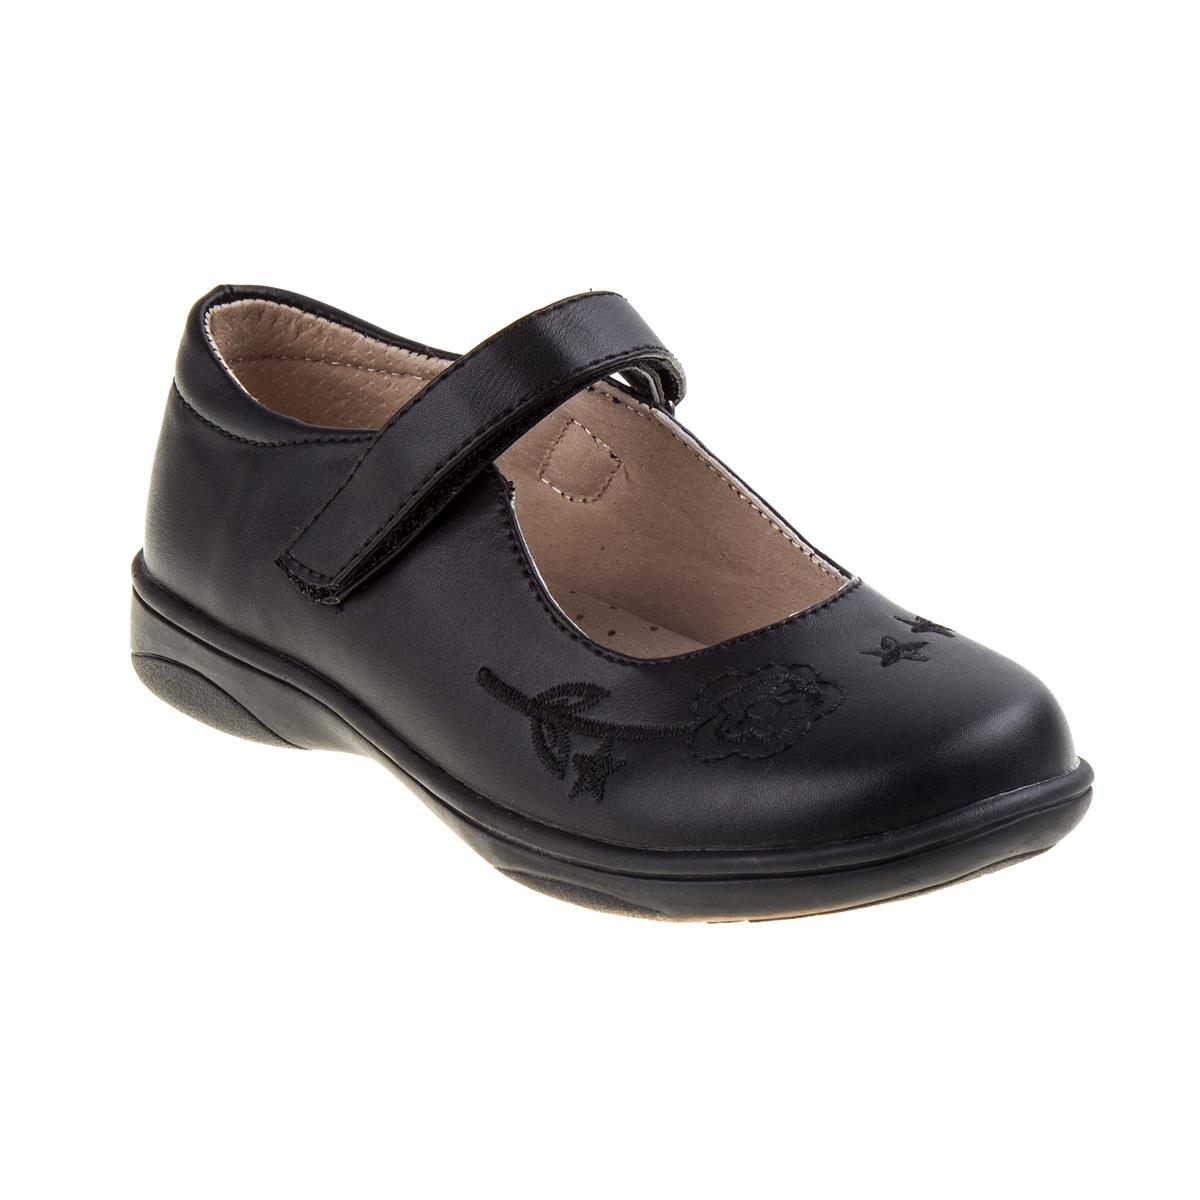 *Black Ankle Leather